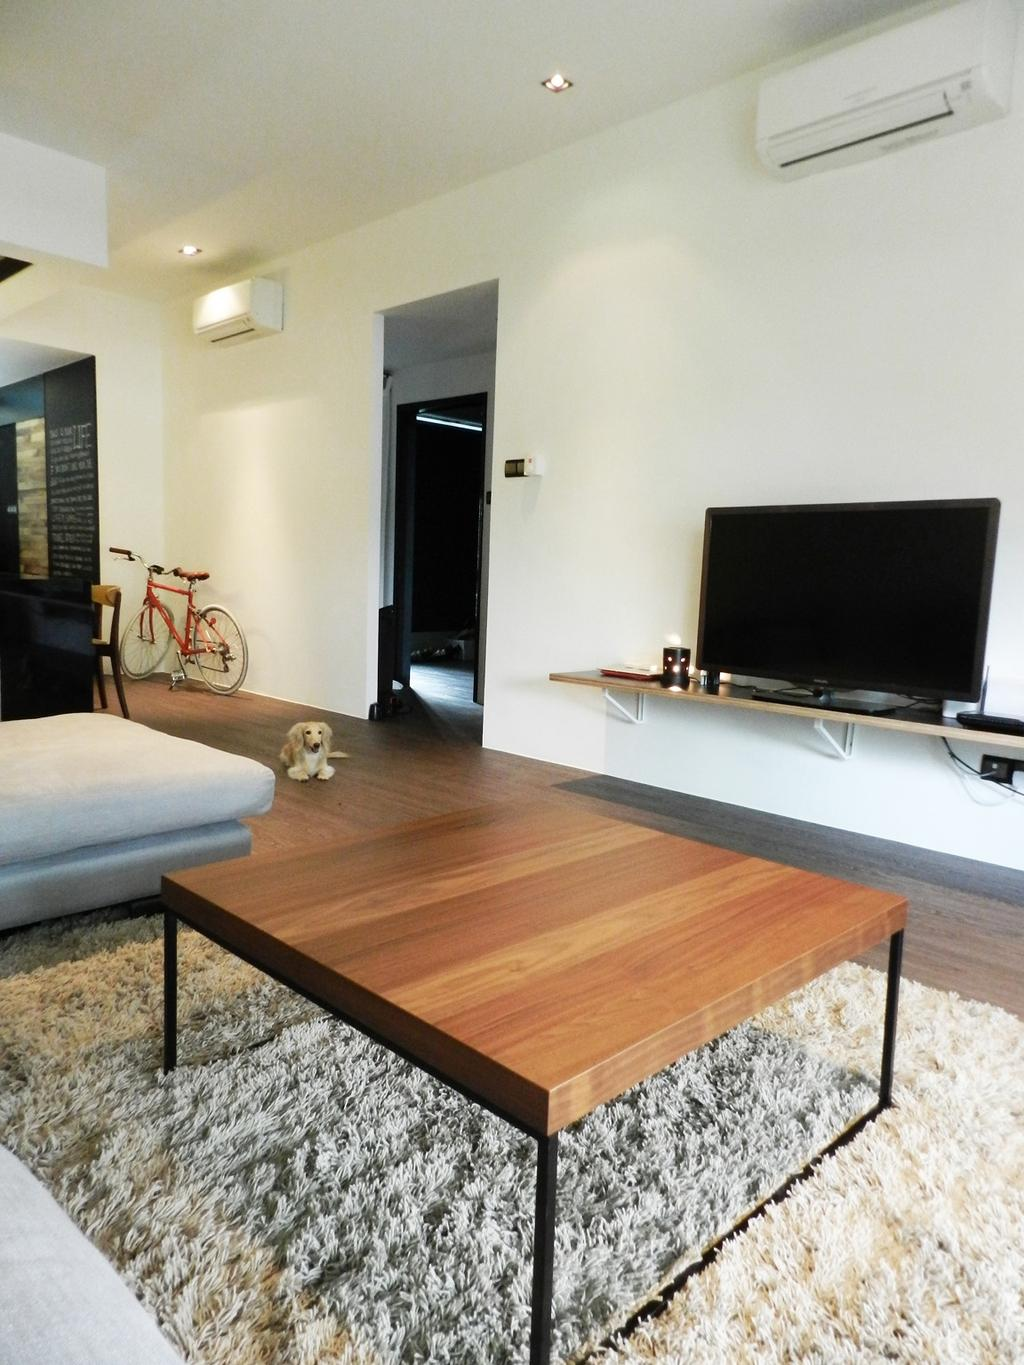 Scandinavian, Condo, Living Room, Eastwood Green, Interior Designer, Habit, Rug, Table, Coffee Table, Chair, Sofa, Bicycle, Tv Console, Woodwork, Wood, Laminate, Wood Laminate, White, Parquet, Bike, Transportation, Vehicle, Electronics, Lcd Screen, Monitor, Screen, Indoors, Room, Flooring